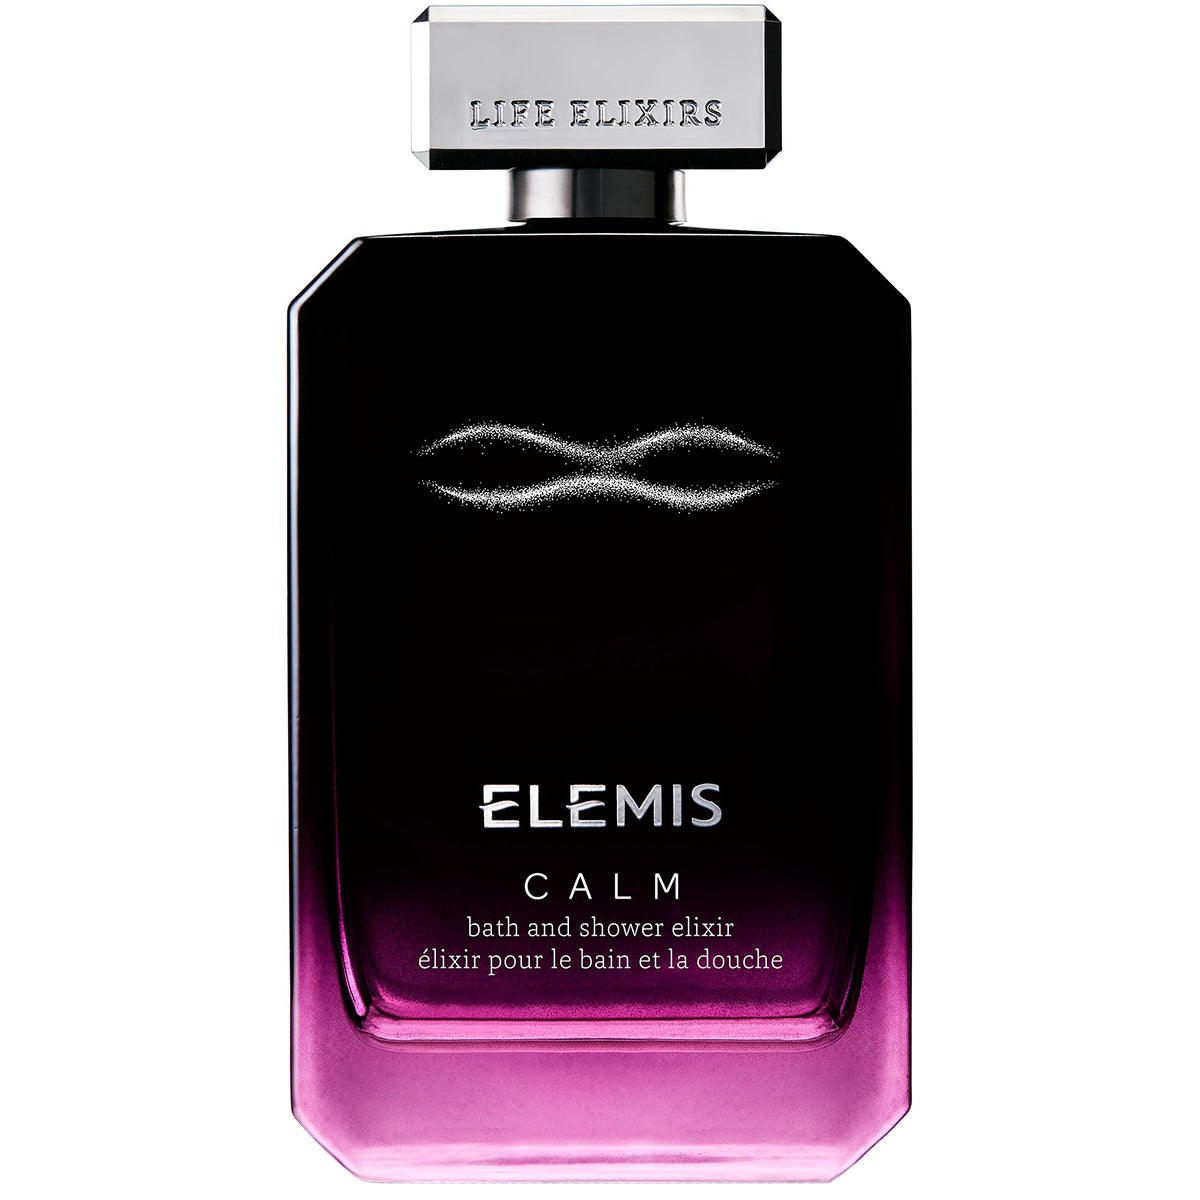 Elemis Life Elixirs Calm Bath & Shower Oil